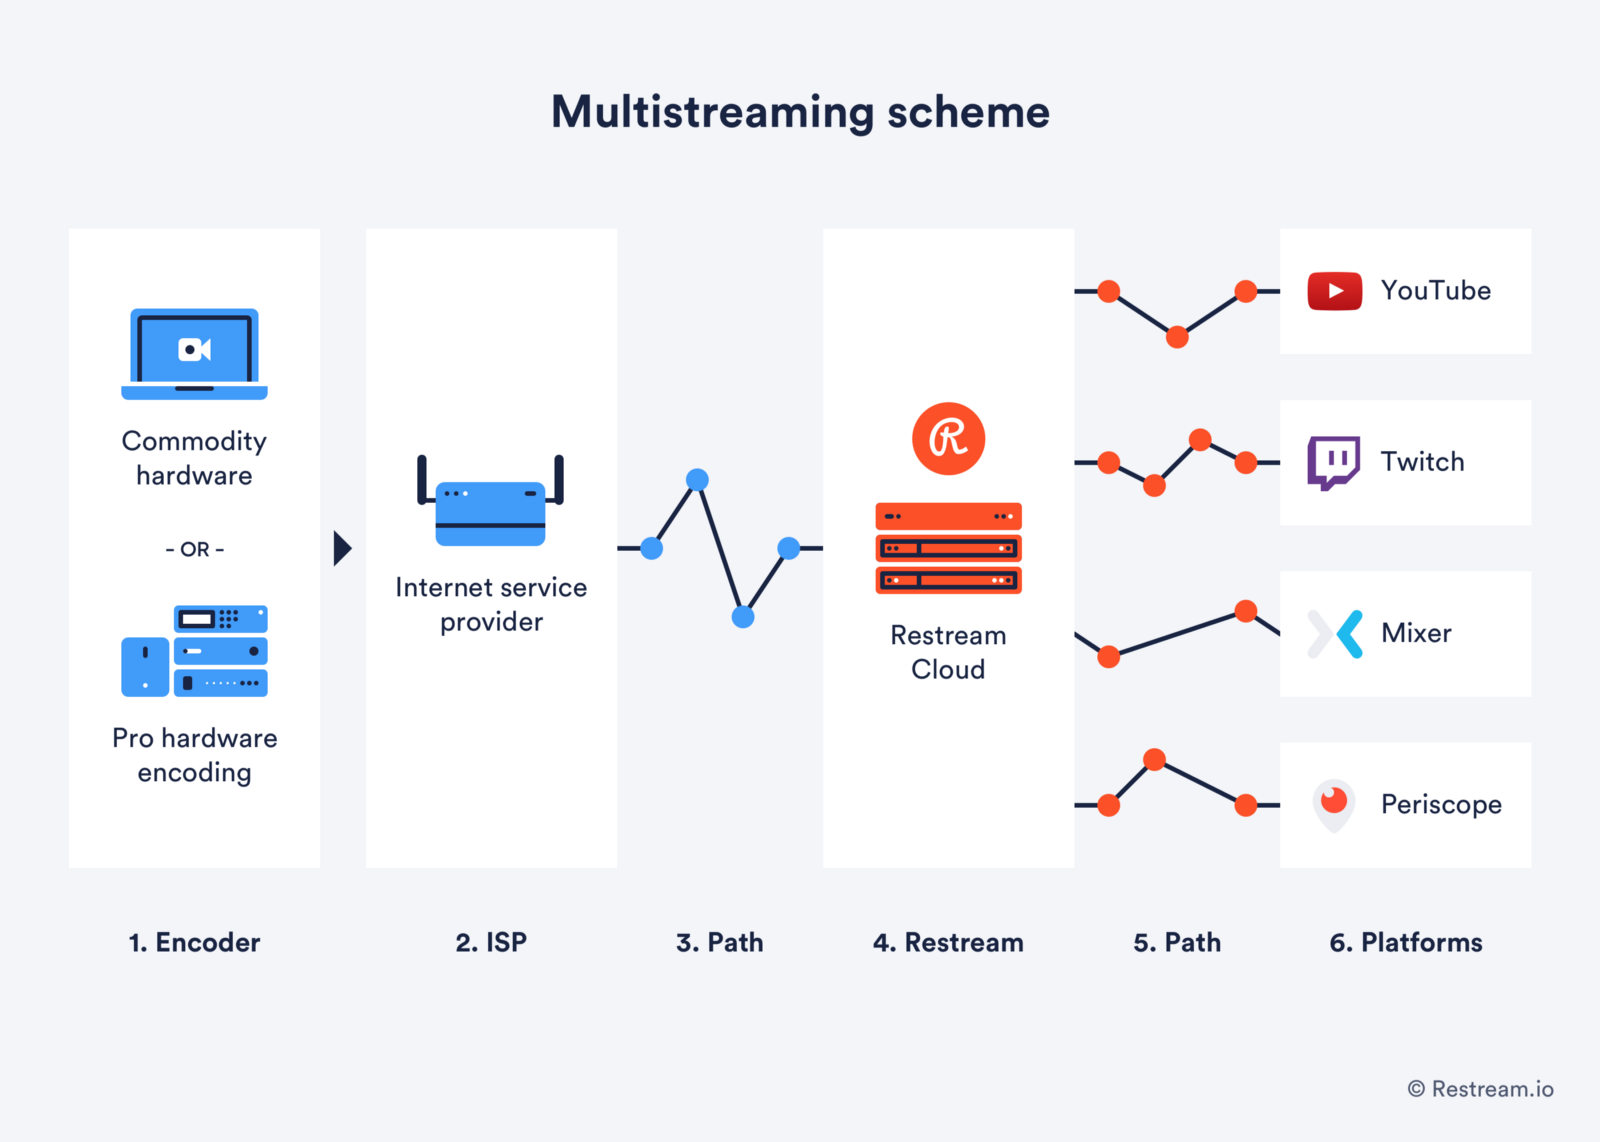 Multistreaming scheme